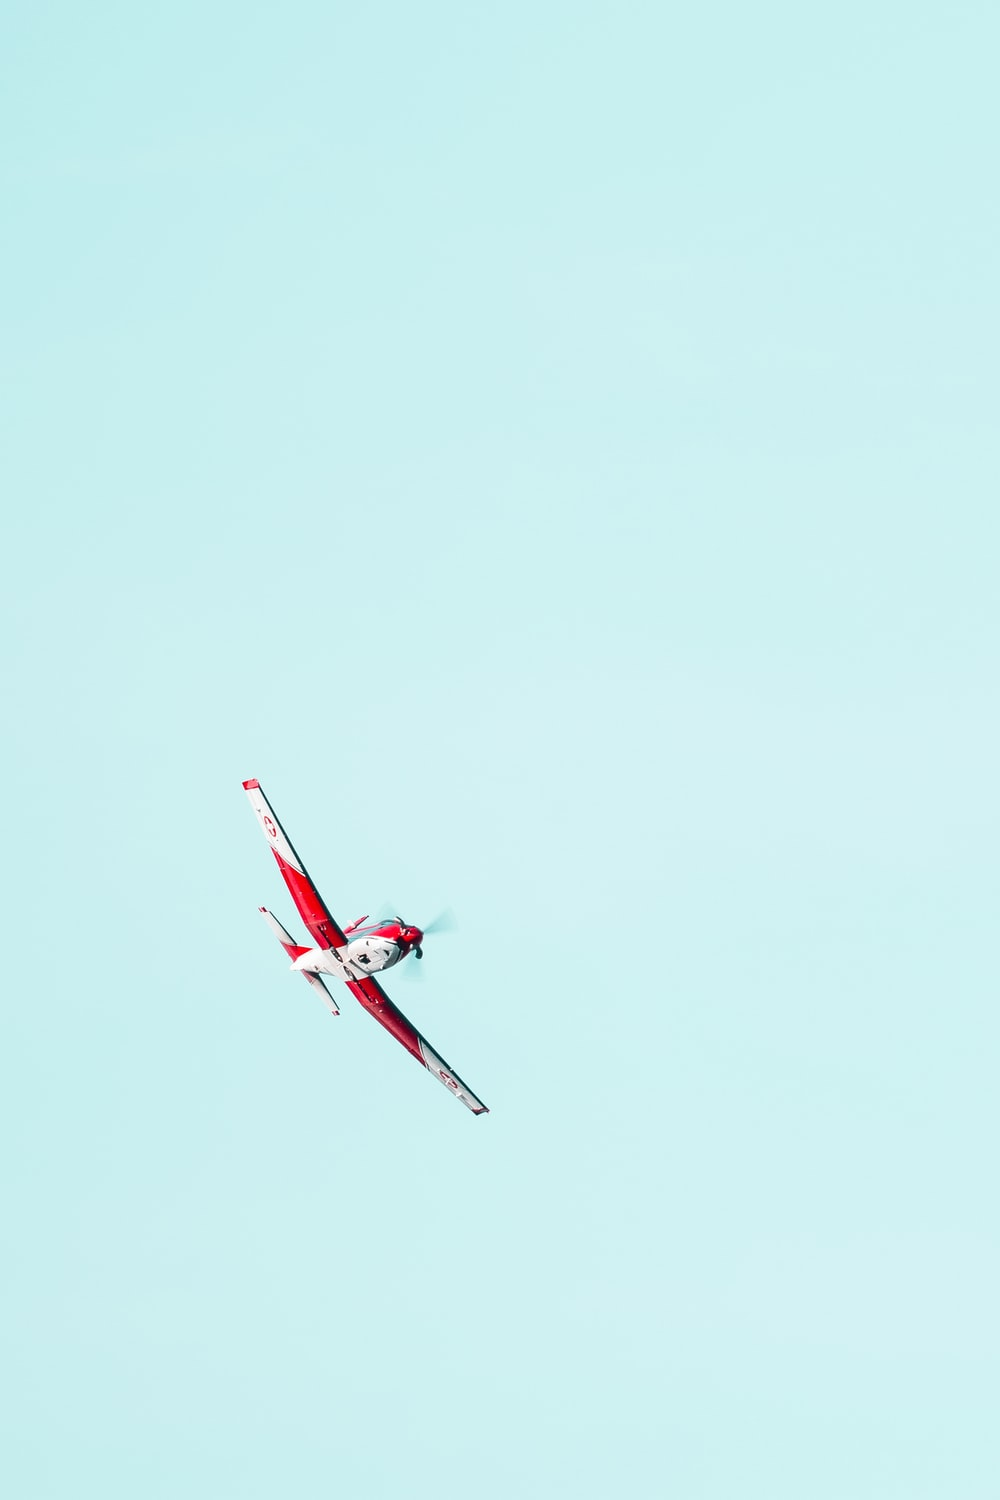 flying red and white biplane